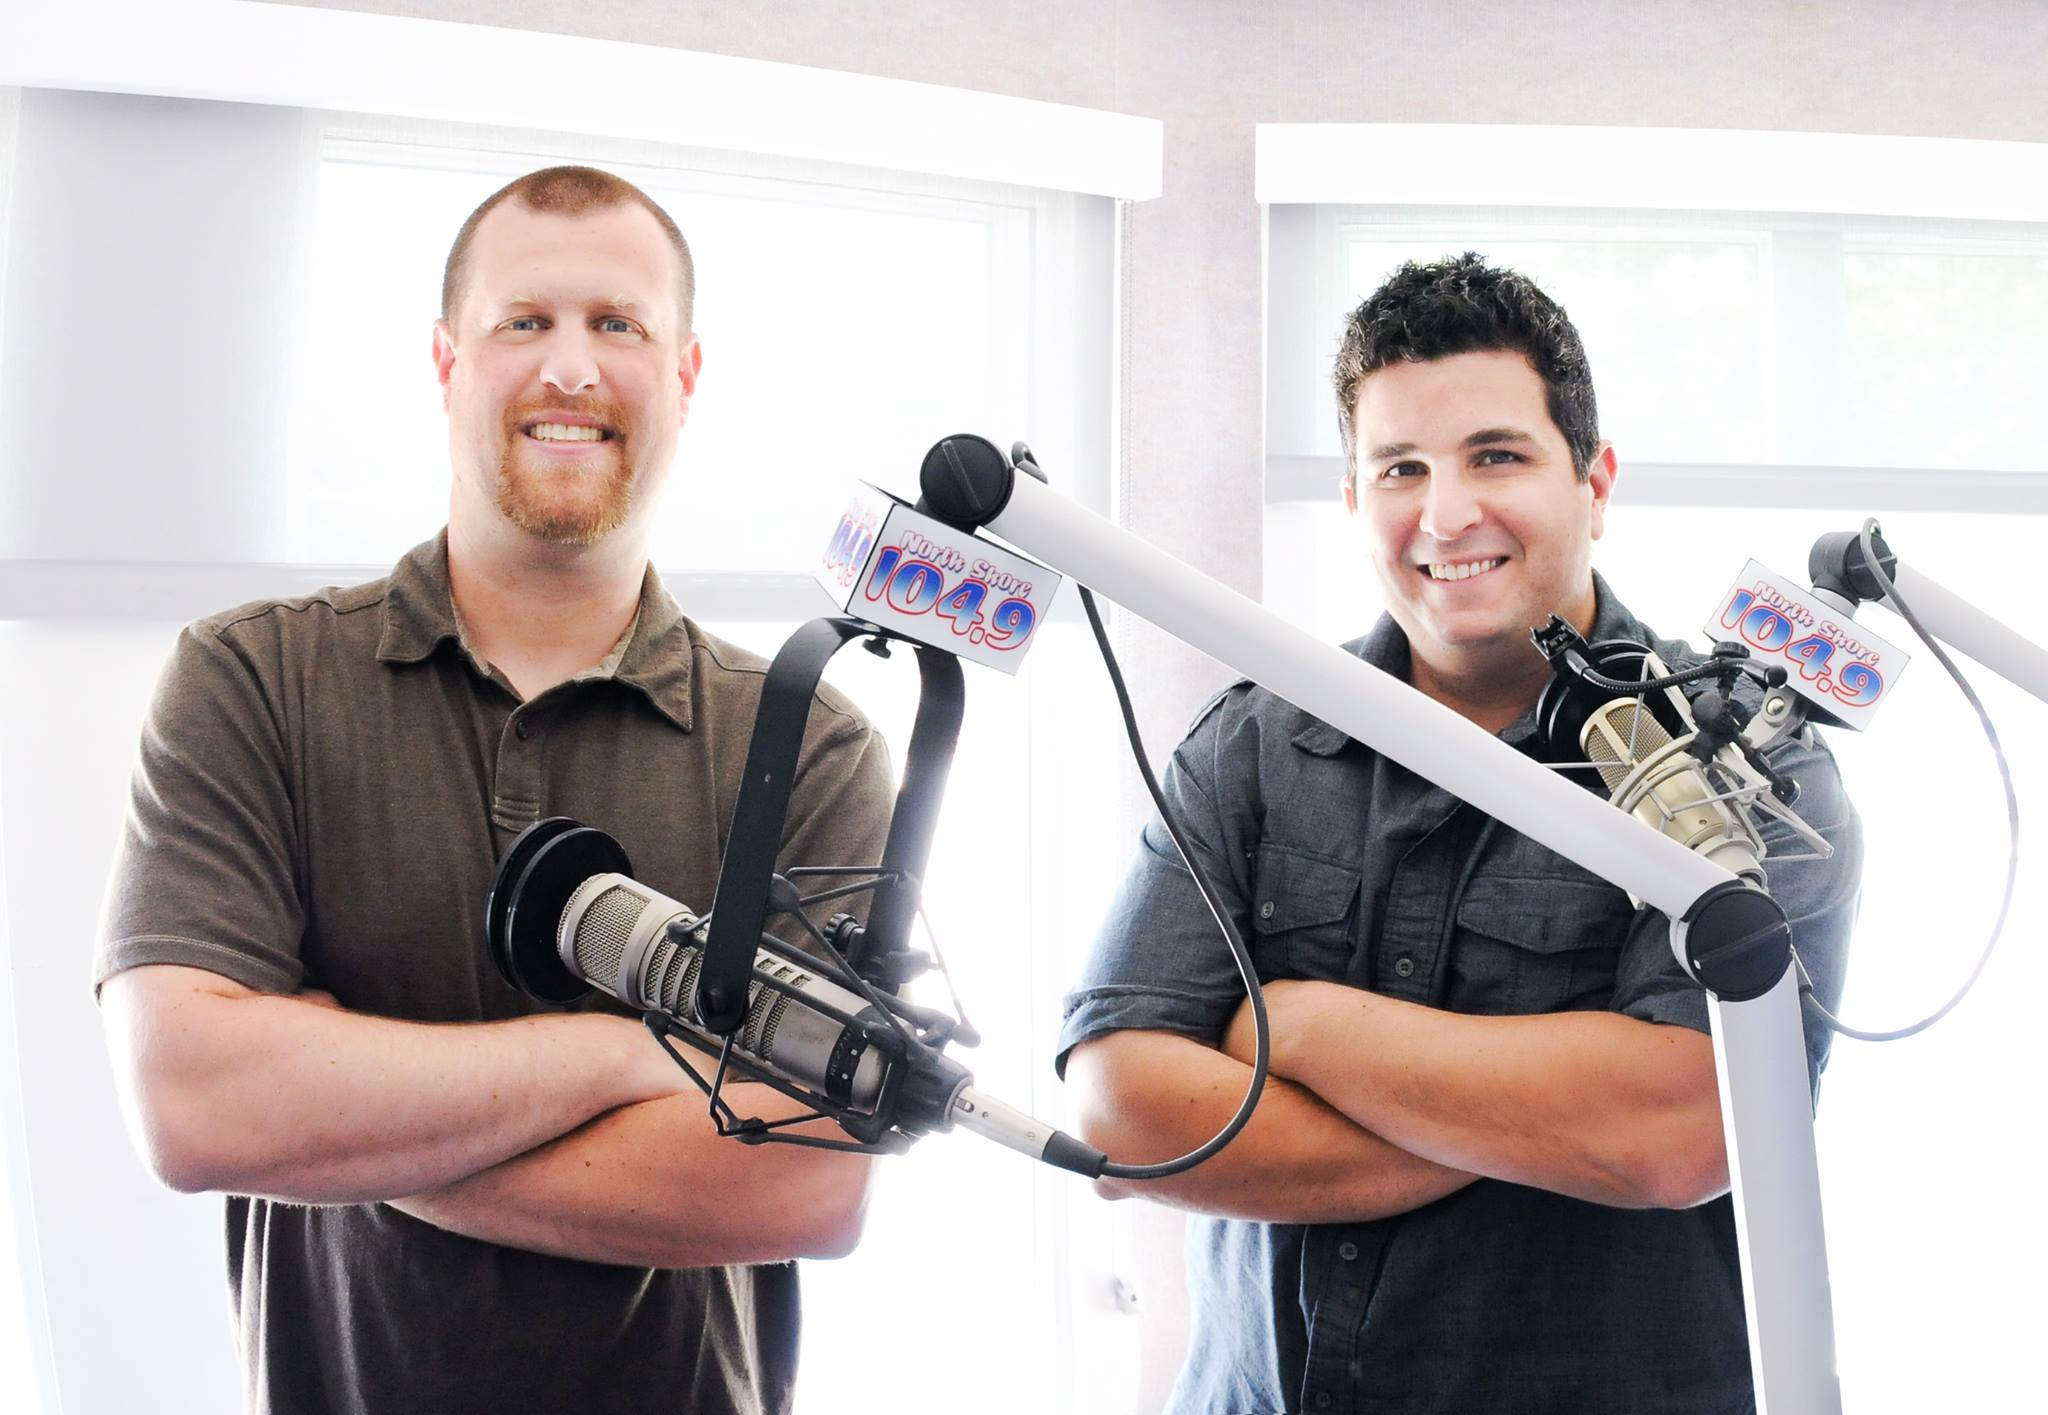 Nick Curcuru & Dom Nicastro in front of microphones at north shore 1049 studio